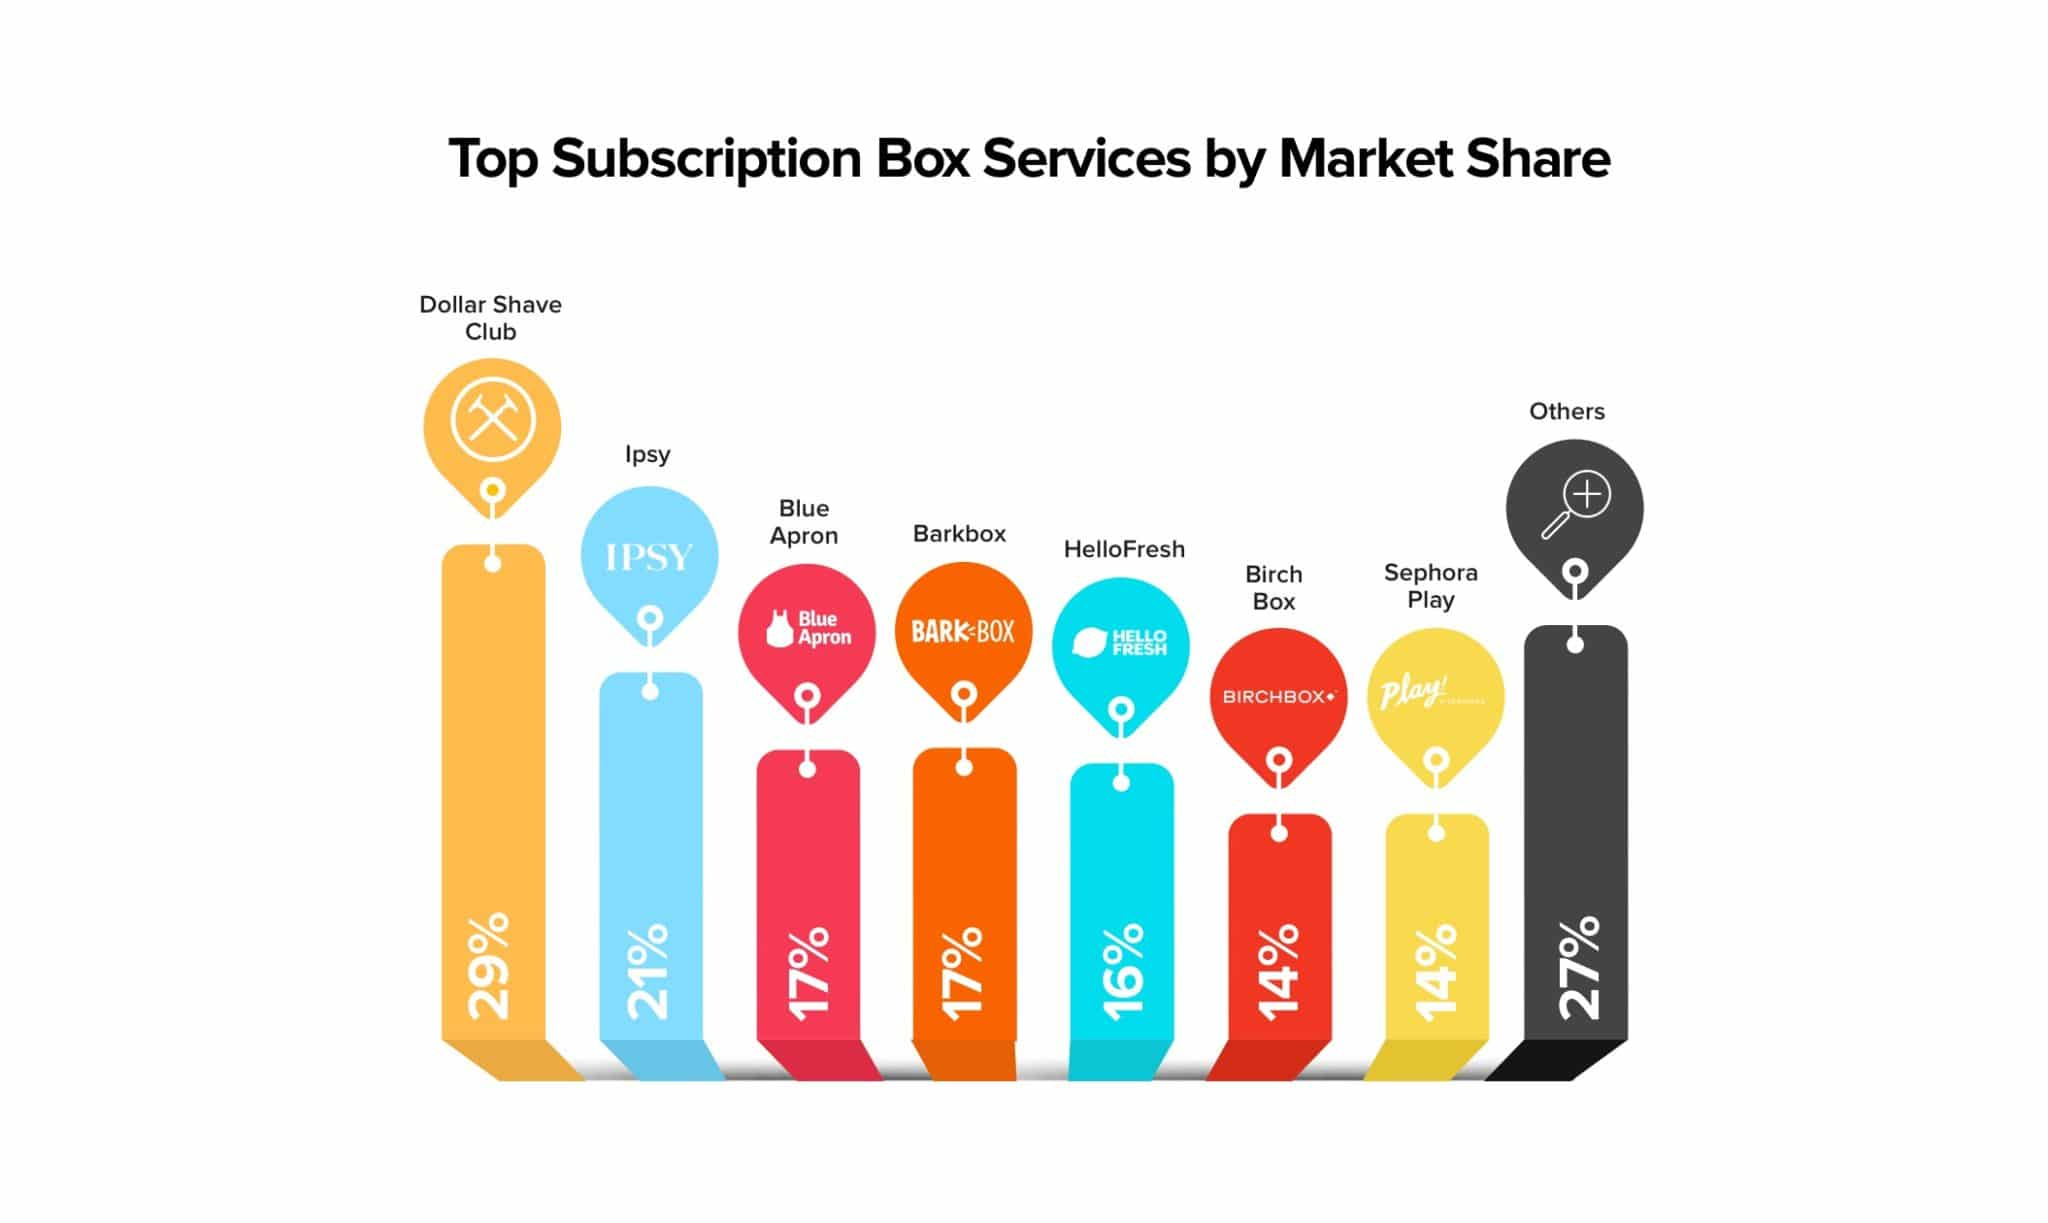 Top Subscription Box Services